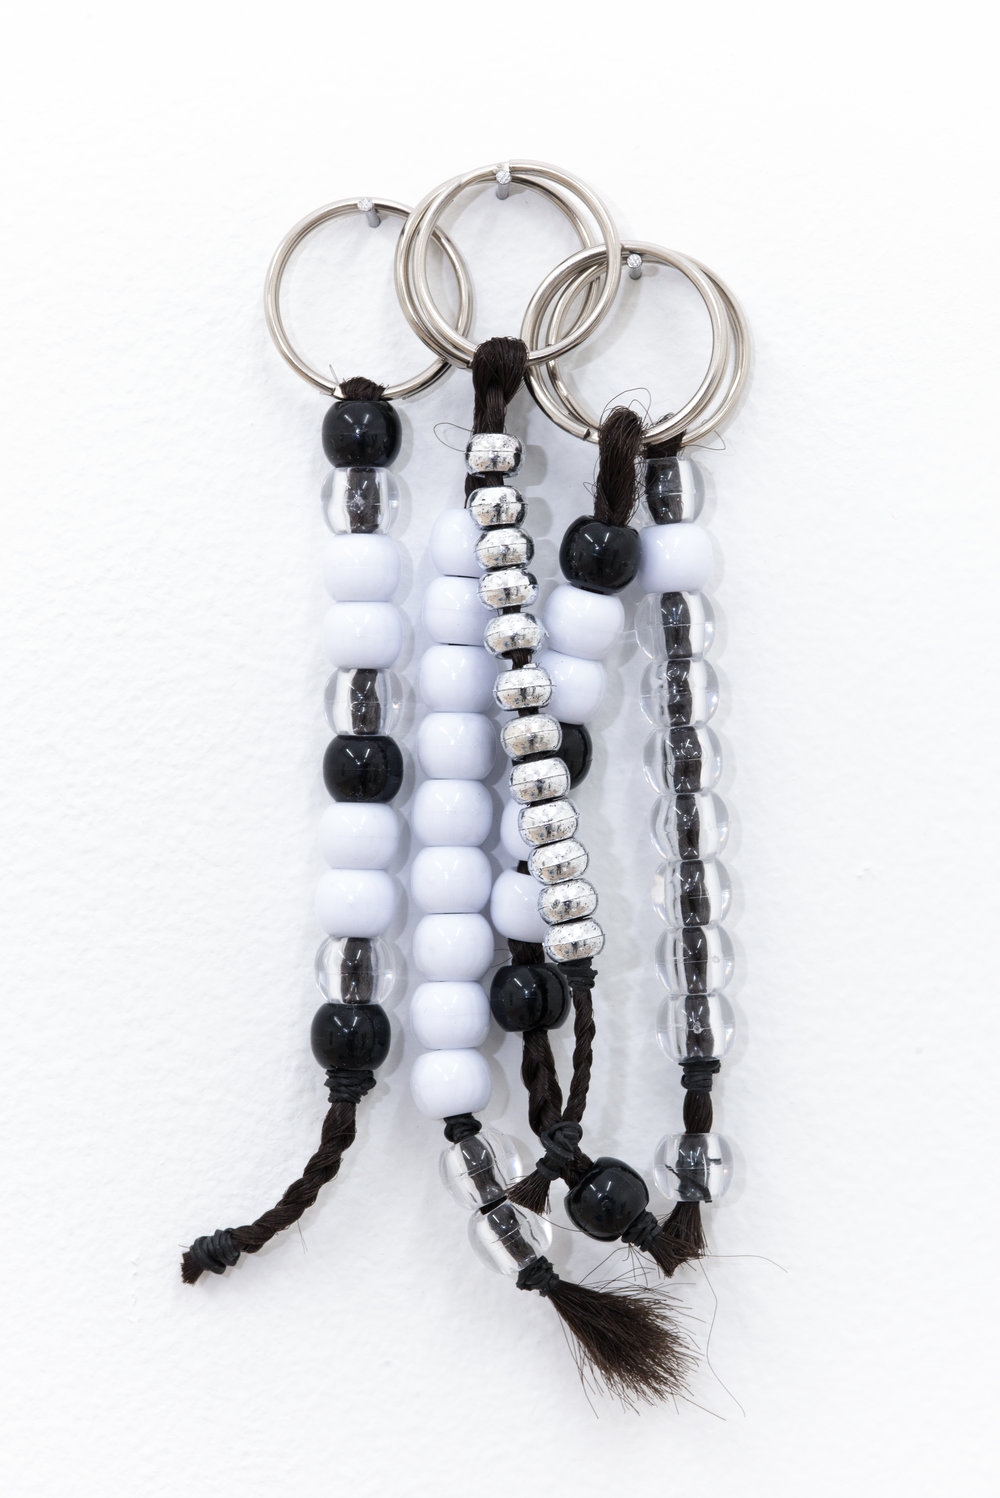 Diamond Stingily Keychains, 2015 Kanekalon hair, beads, elastic, silver keys rings, dimensions variable